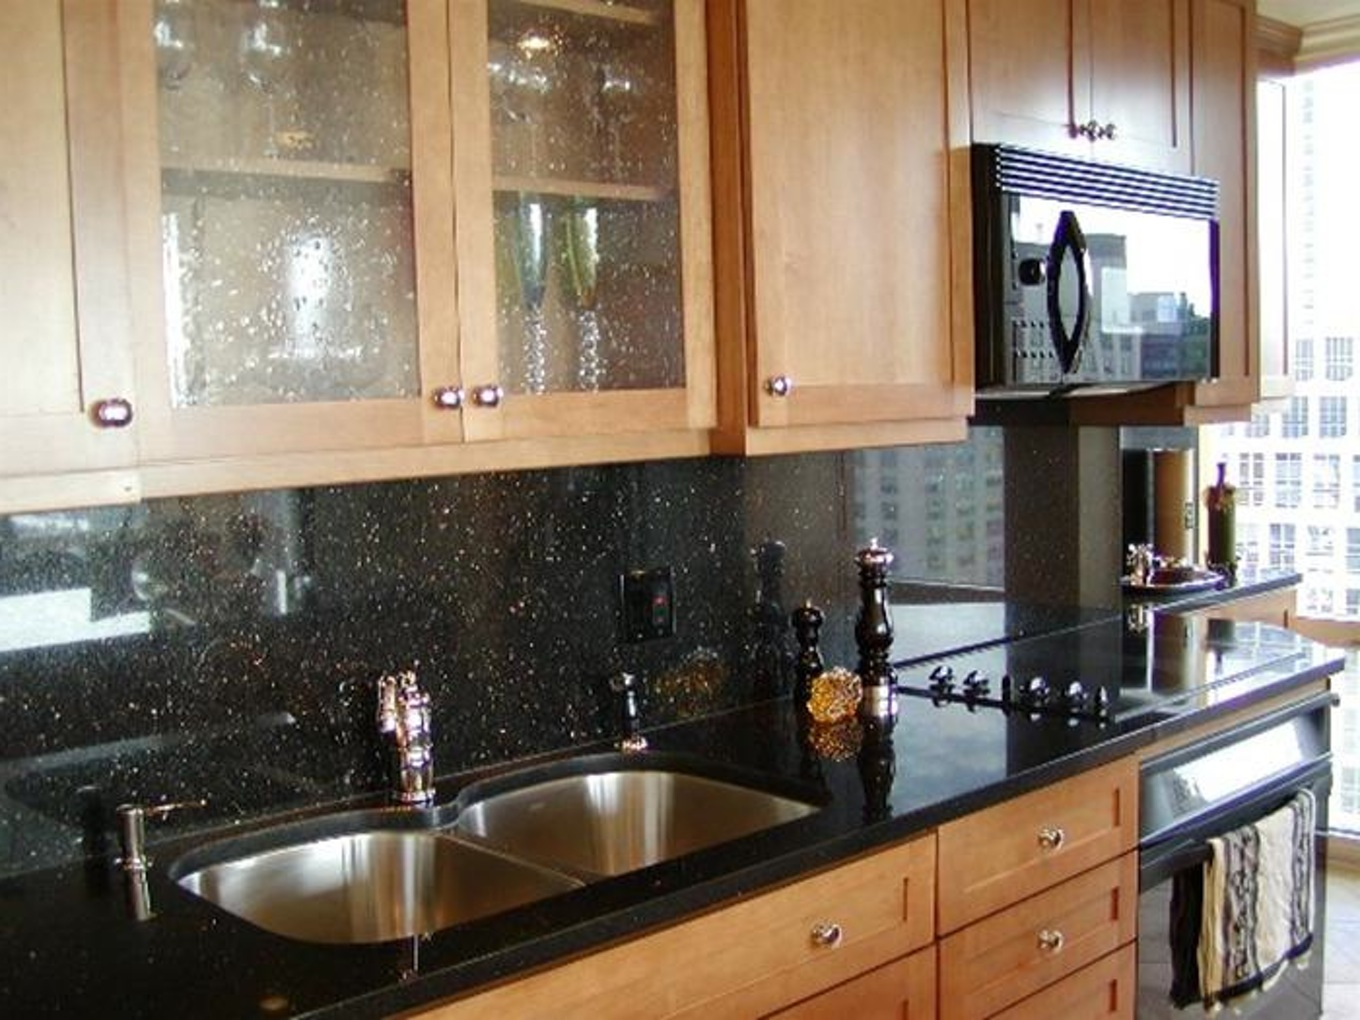 ideas-for-kitchen-countertops-countertops-quartz-price-eco-at-lowes-08050739-bathroom-concrete-edmonton-near-me-corian-menards-corinthian-direct-fort-gratiot-mi-harrison